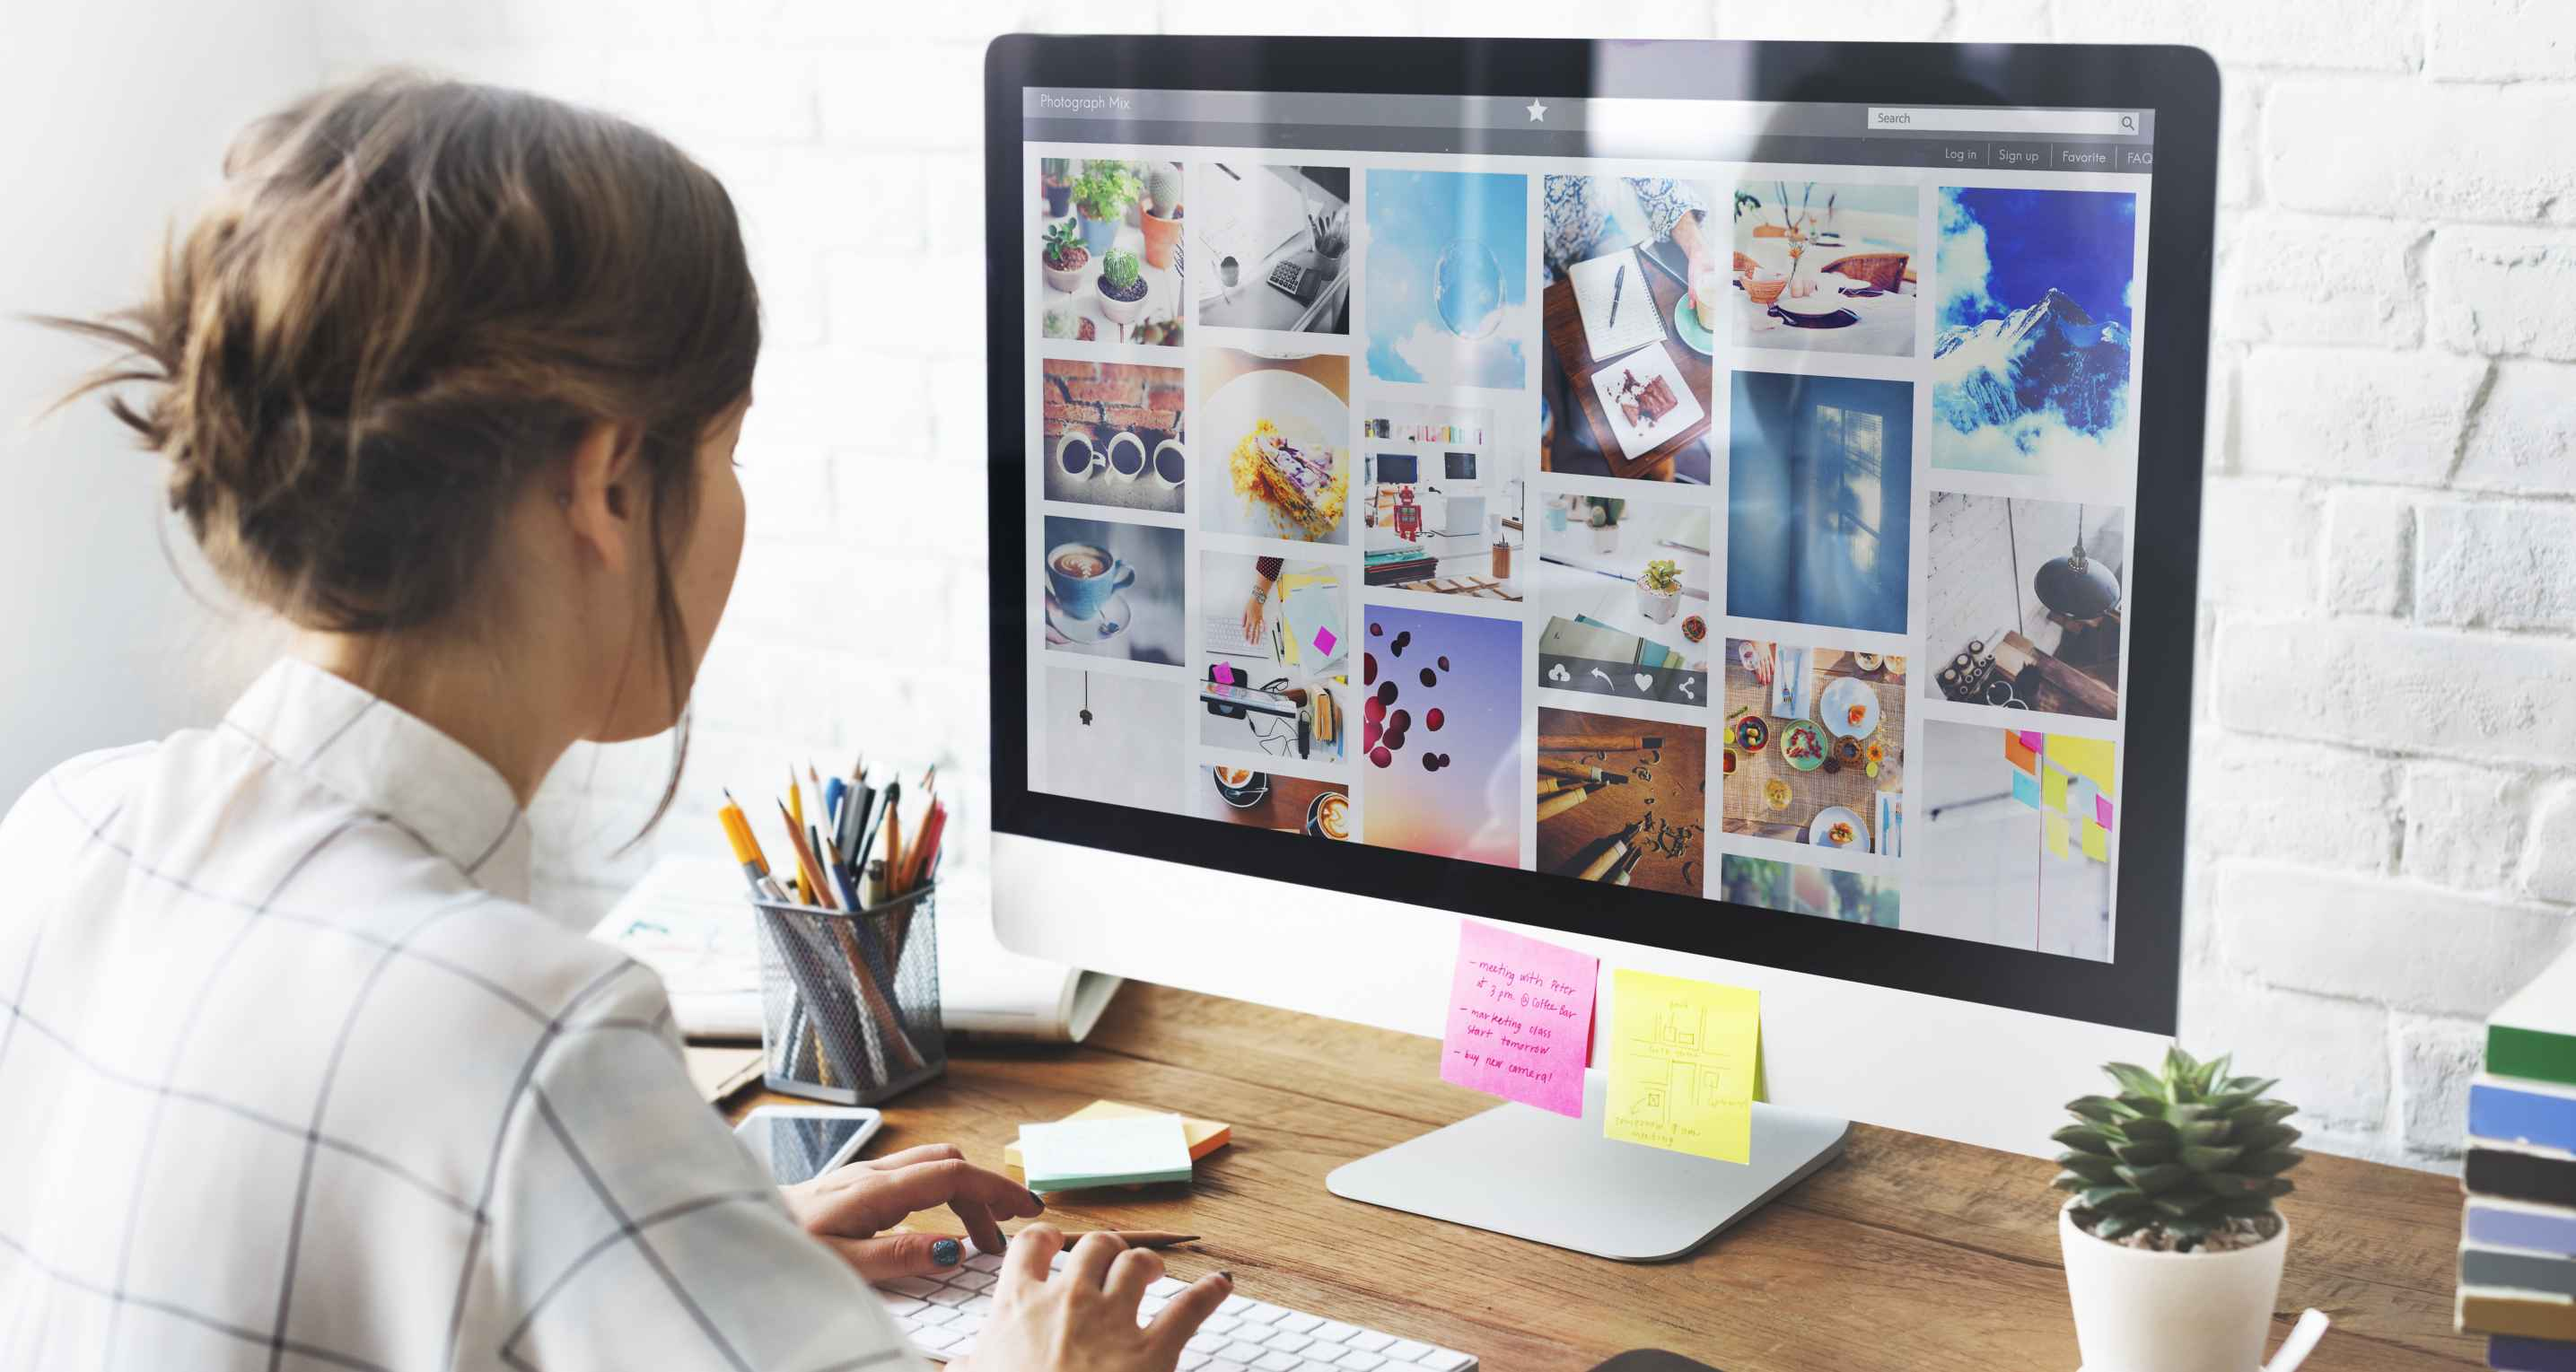 4 best practices for image management